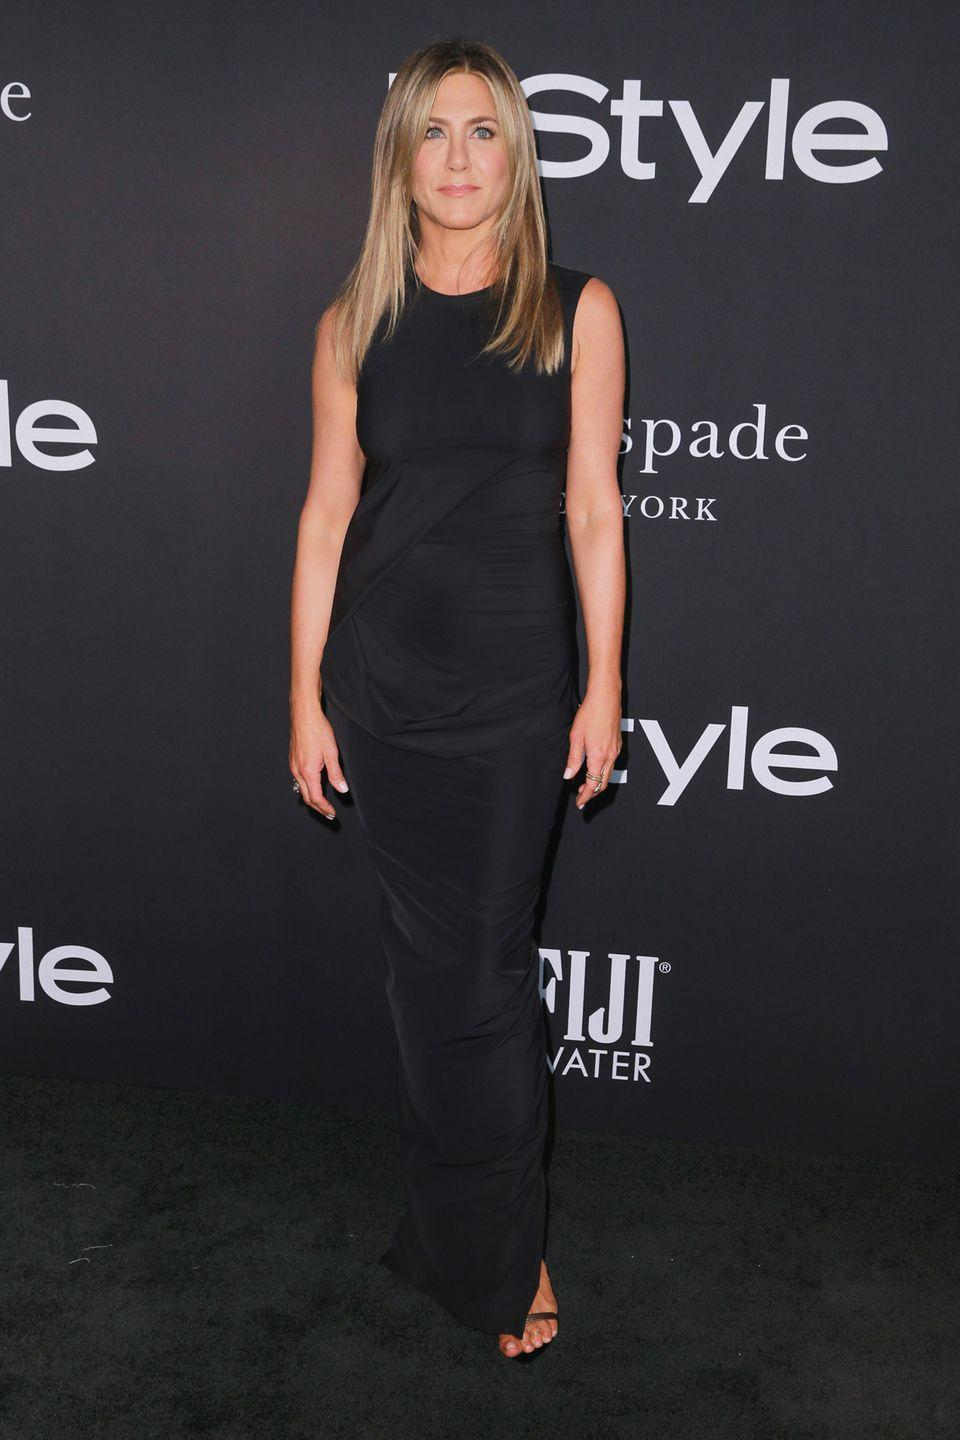 """<p>""""She's very diligent. She is ready to work out hard, every single time she hits the gym,"""" Azubuike told <a href=""""https://people.com/health/jennifer-aniston-trainer-leyon-azubuike-boxing-workout/"""" rel=""""nofollow noopener"""" target=""""_blank"""" data-ylk=""""slk:People"""" class=""""link rapid-noclick-resp"""">People</a>. """"Whether it be a 45-minute session, whether it be a two-hour session, she's always ready to go.""""</p>"""